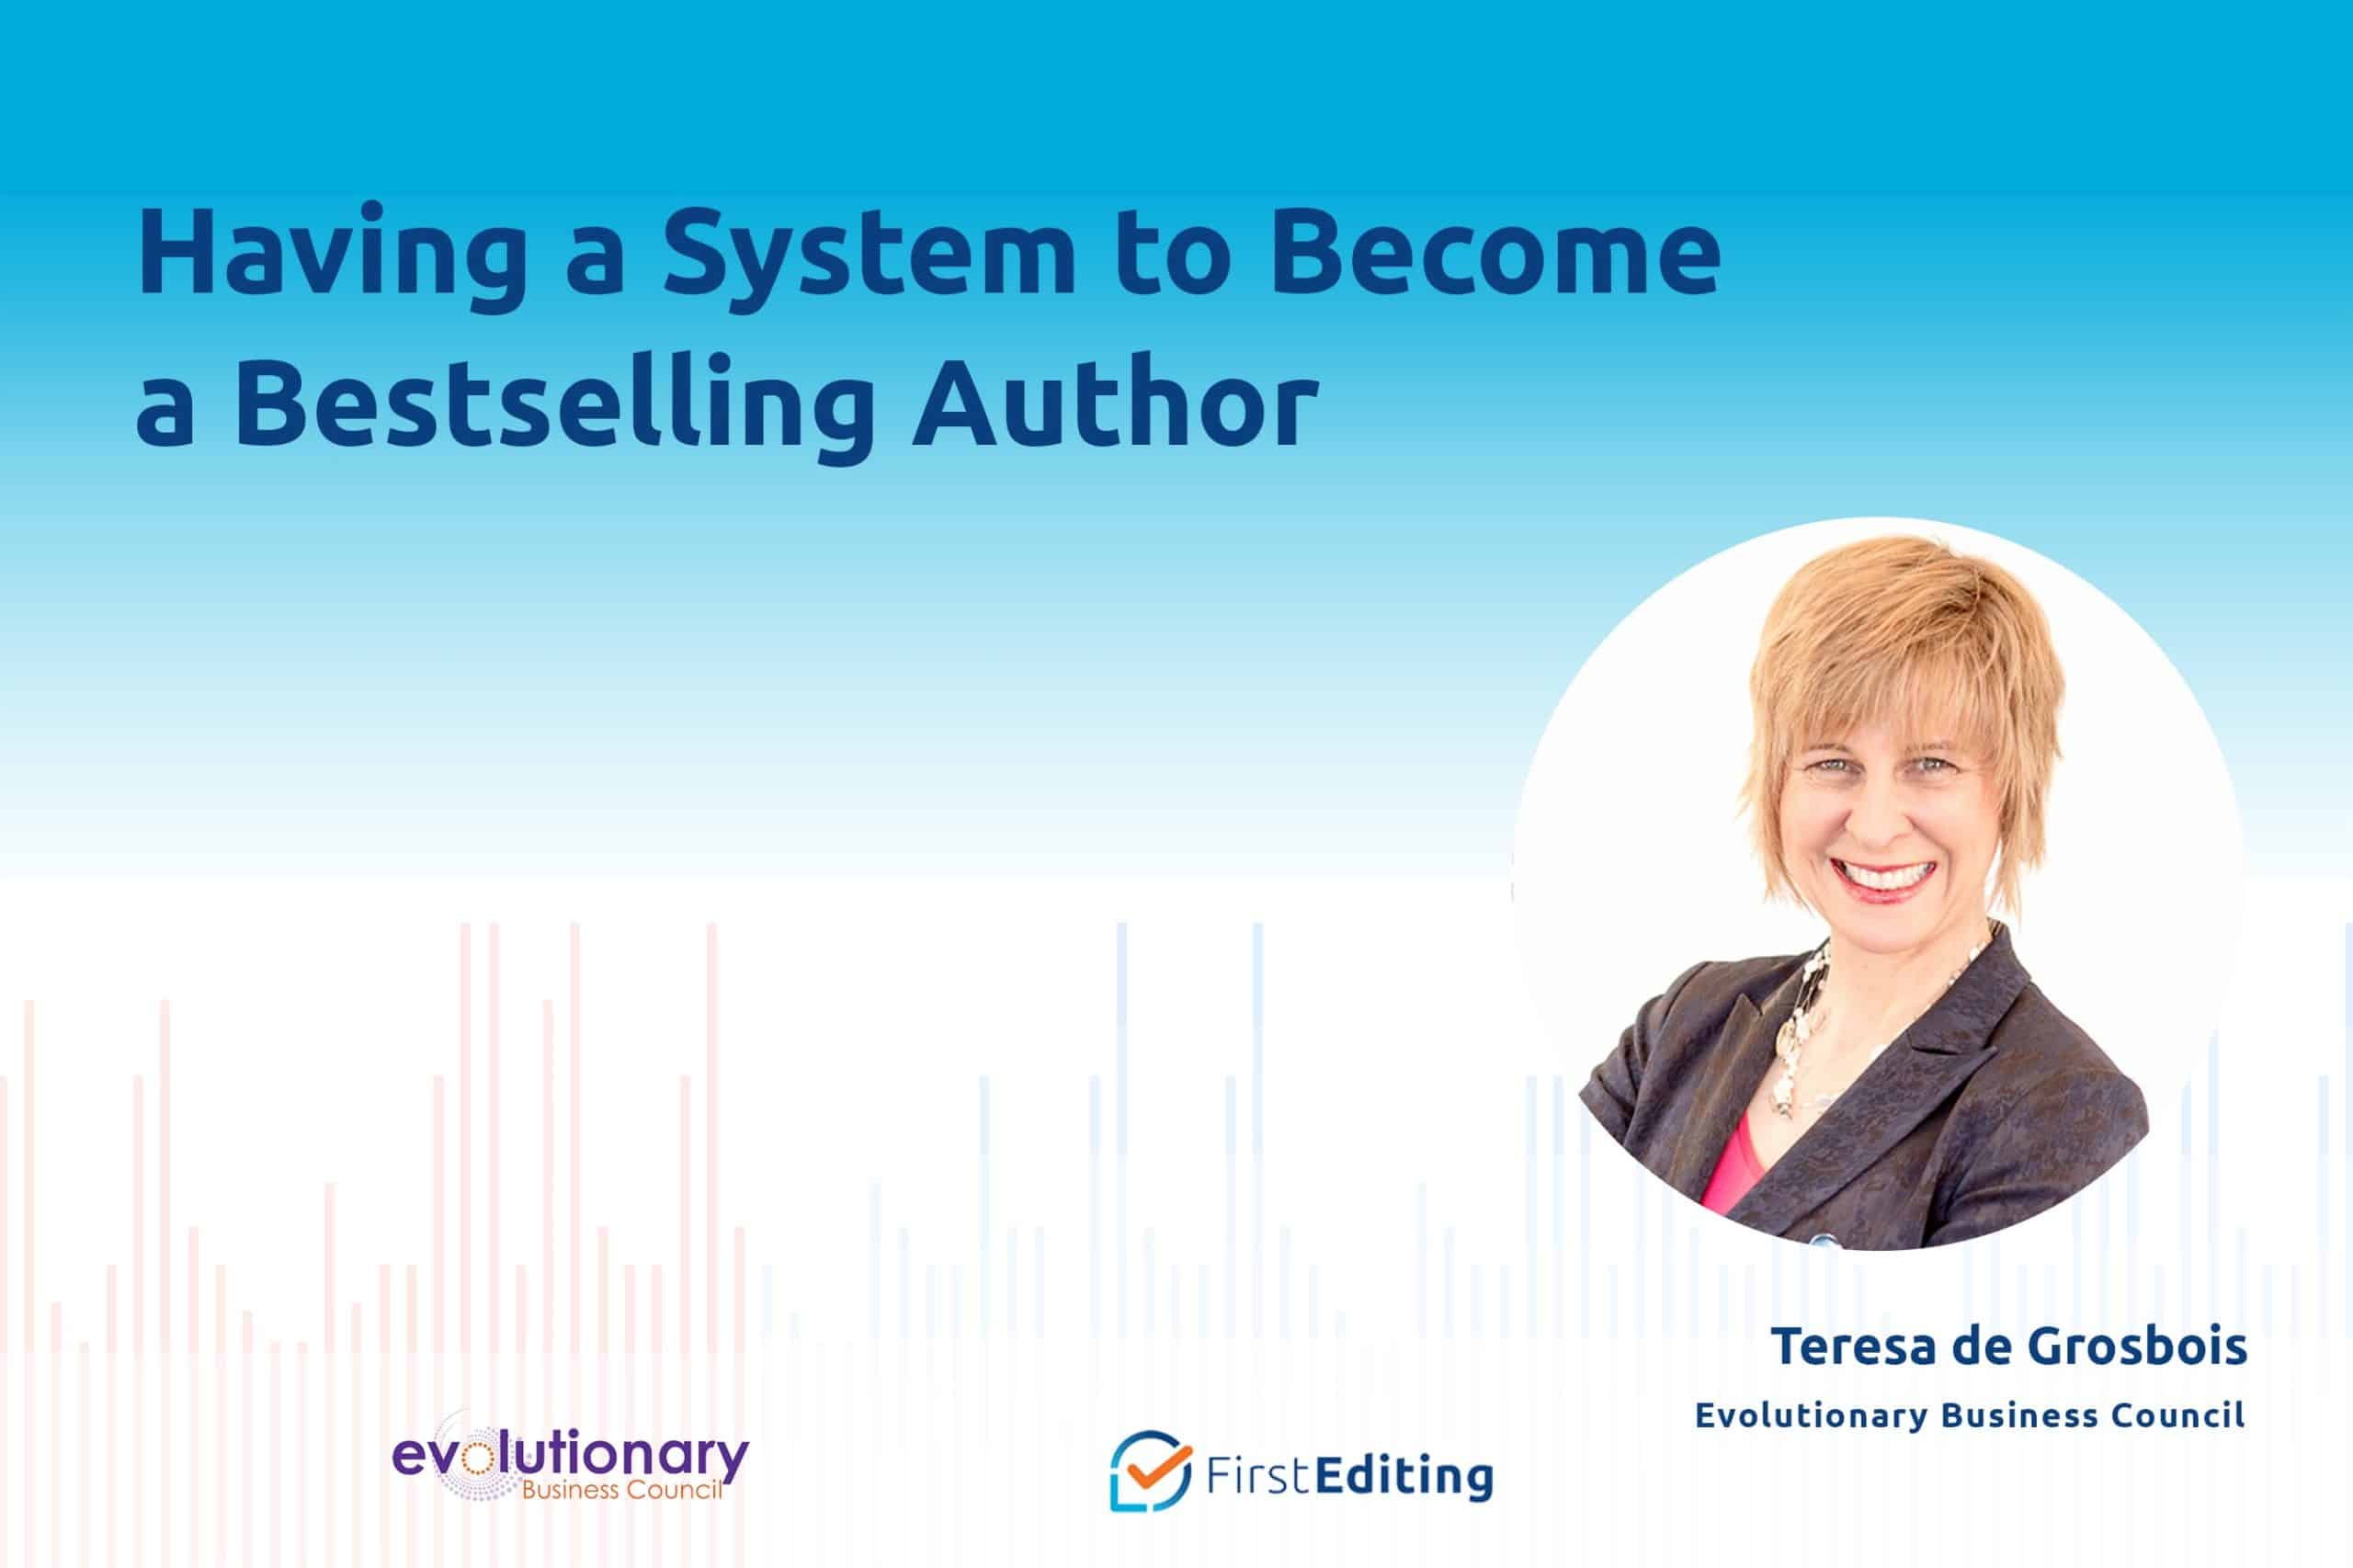 Having a System to Become a Bestselling Author with Teresa de Grosbois